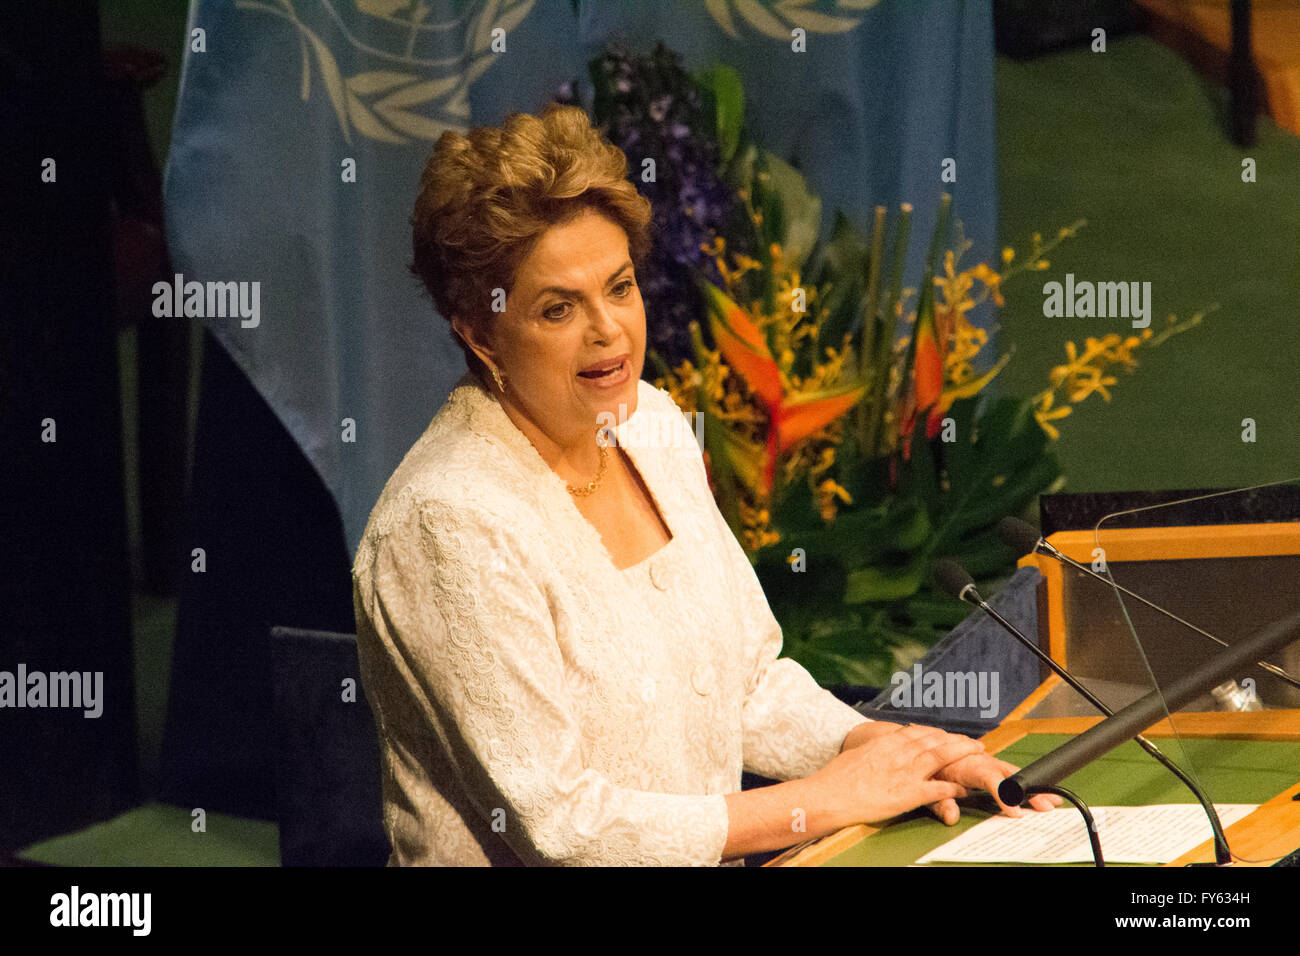 New York, USA. 22nd April 2016. Dilma Rousseff, the embattled president of Brazil, speaks at the signing ceremony. - Stock Image